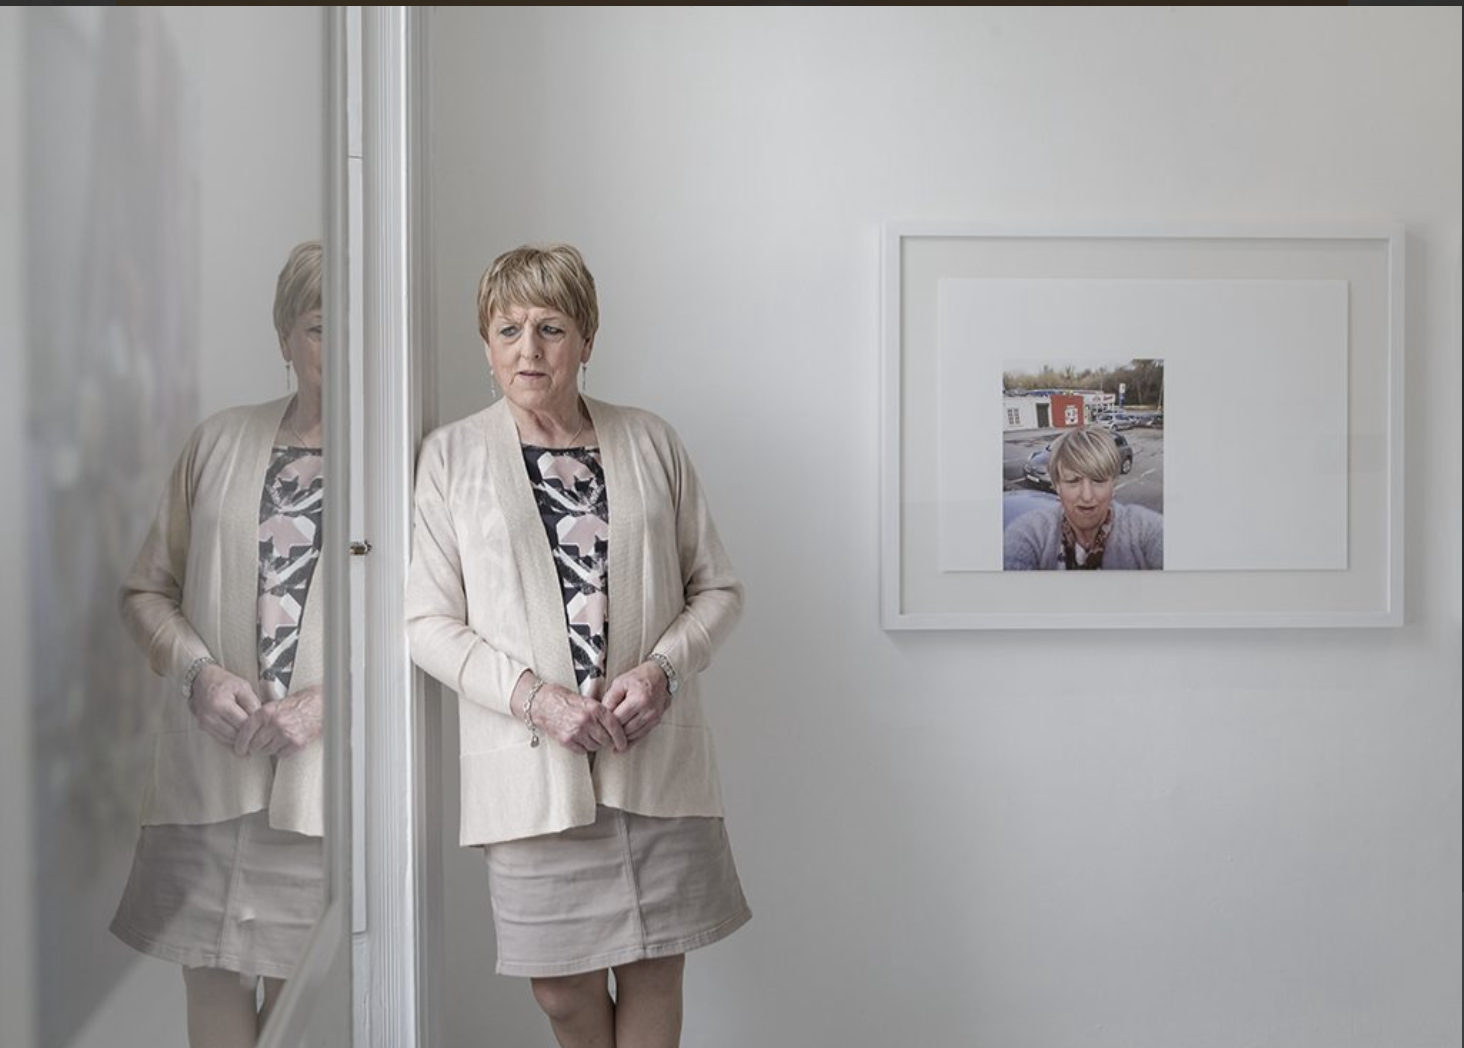 BIRTHDAY SHOW: Becoming Christine exhibition marks the 37th year of Belfast Exposed and follows the transition and journey of Christine Benyon over 12 years.